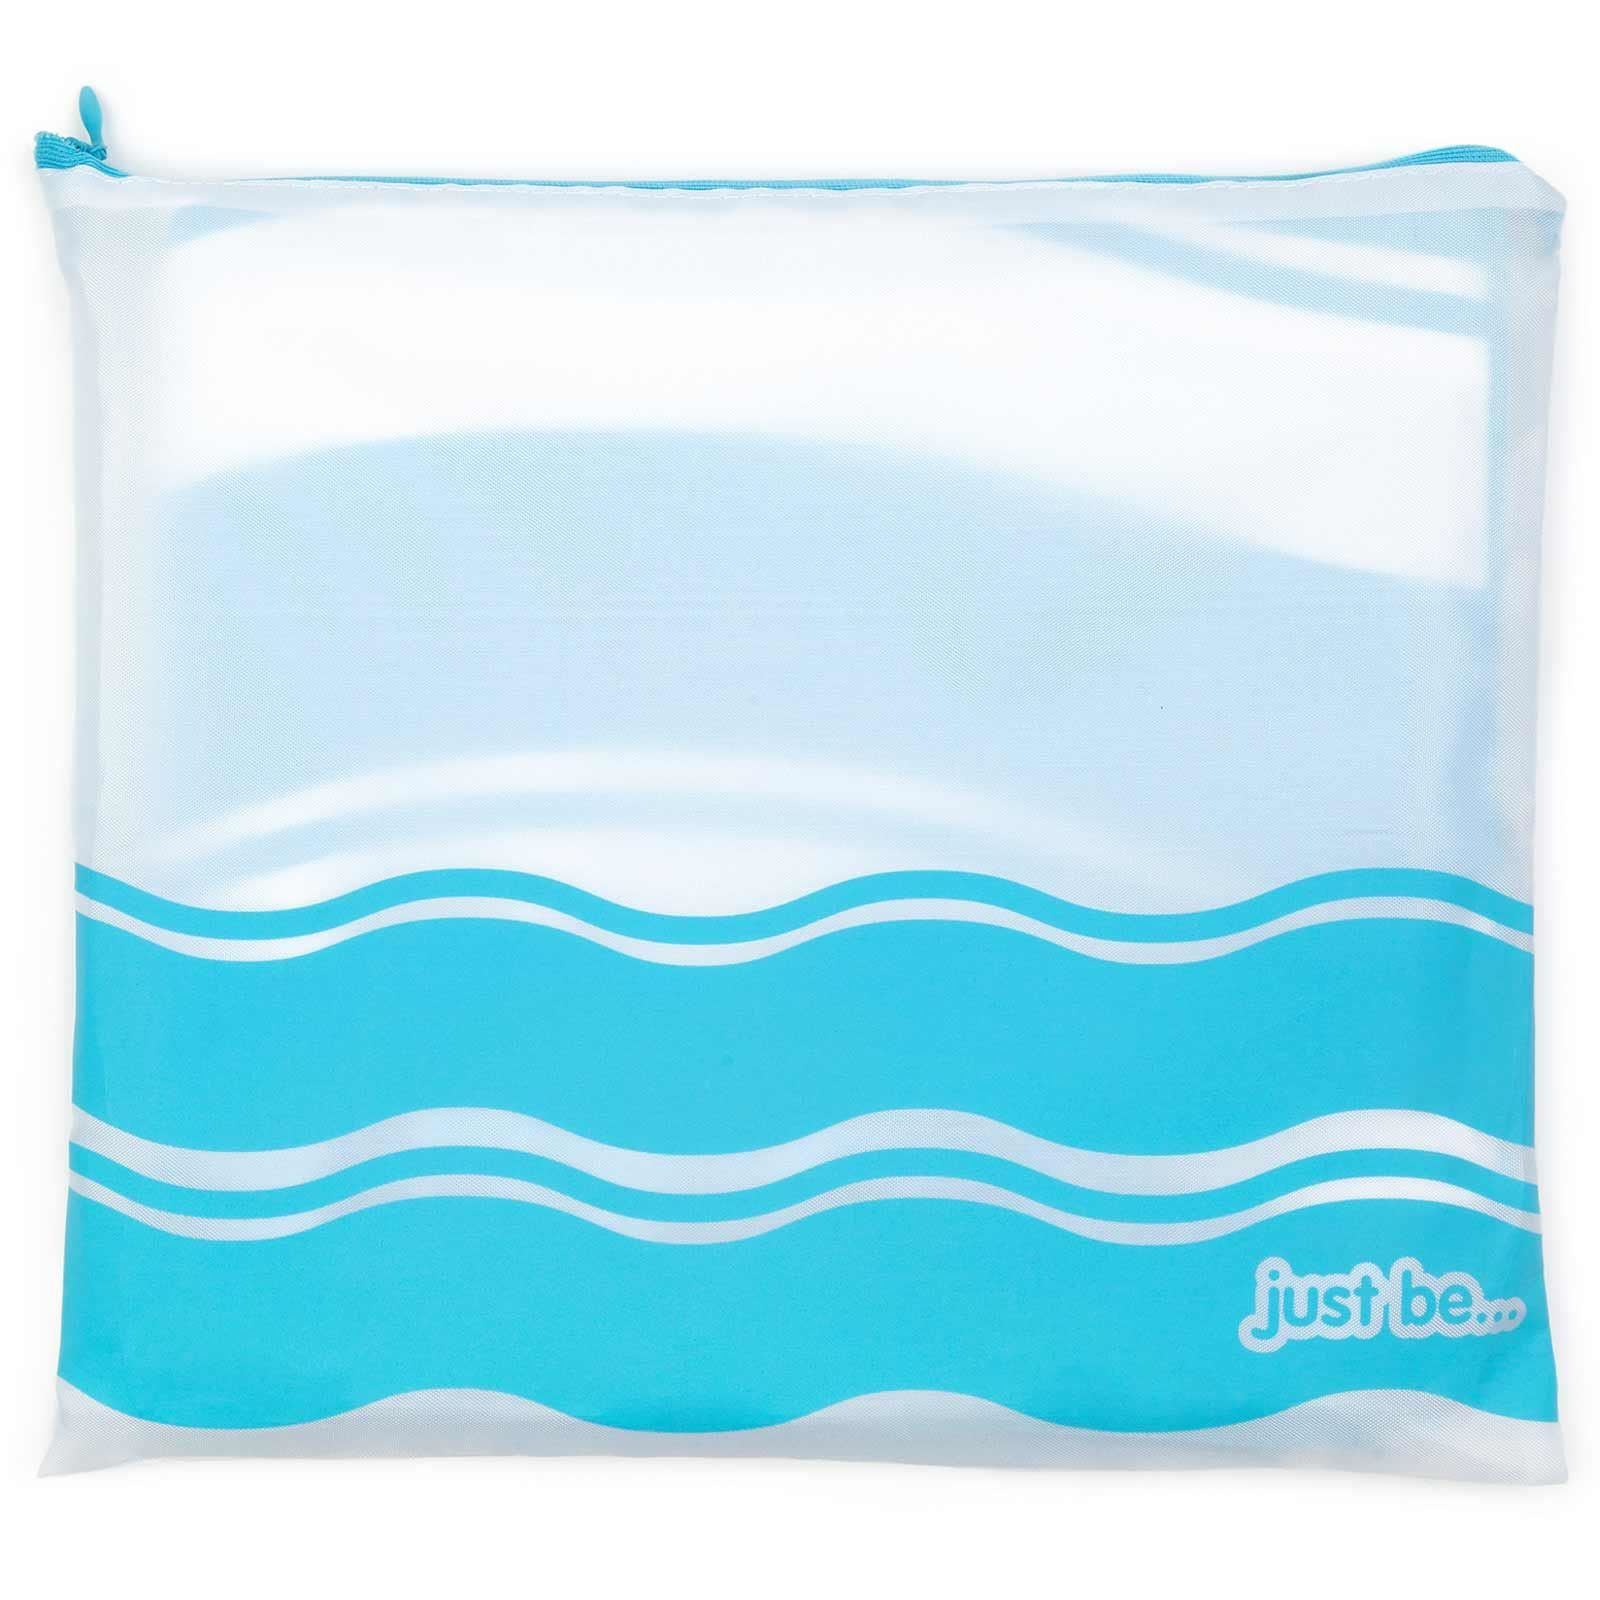 thumbnail 18 - Compact Large Quick Dry Microfibre Beach Towel with Travel Bag Camping Yoga Swim